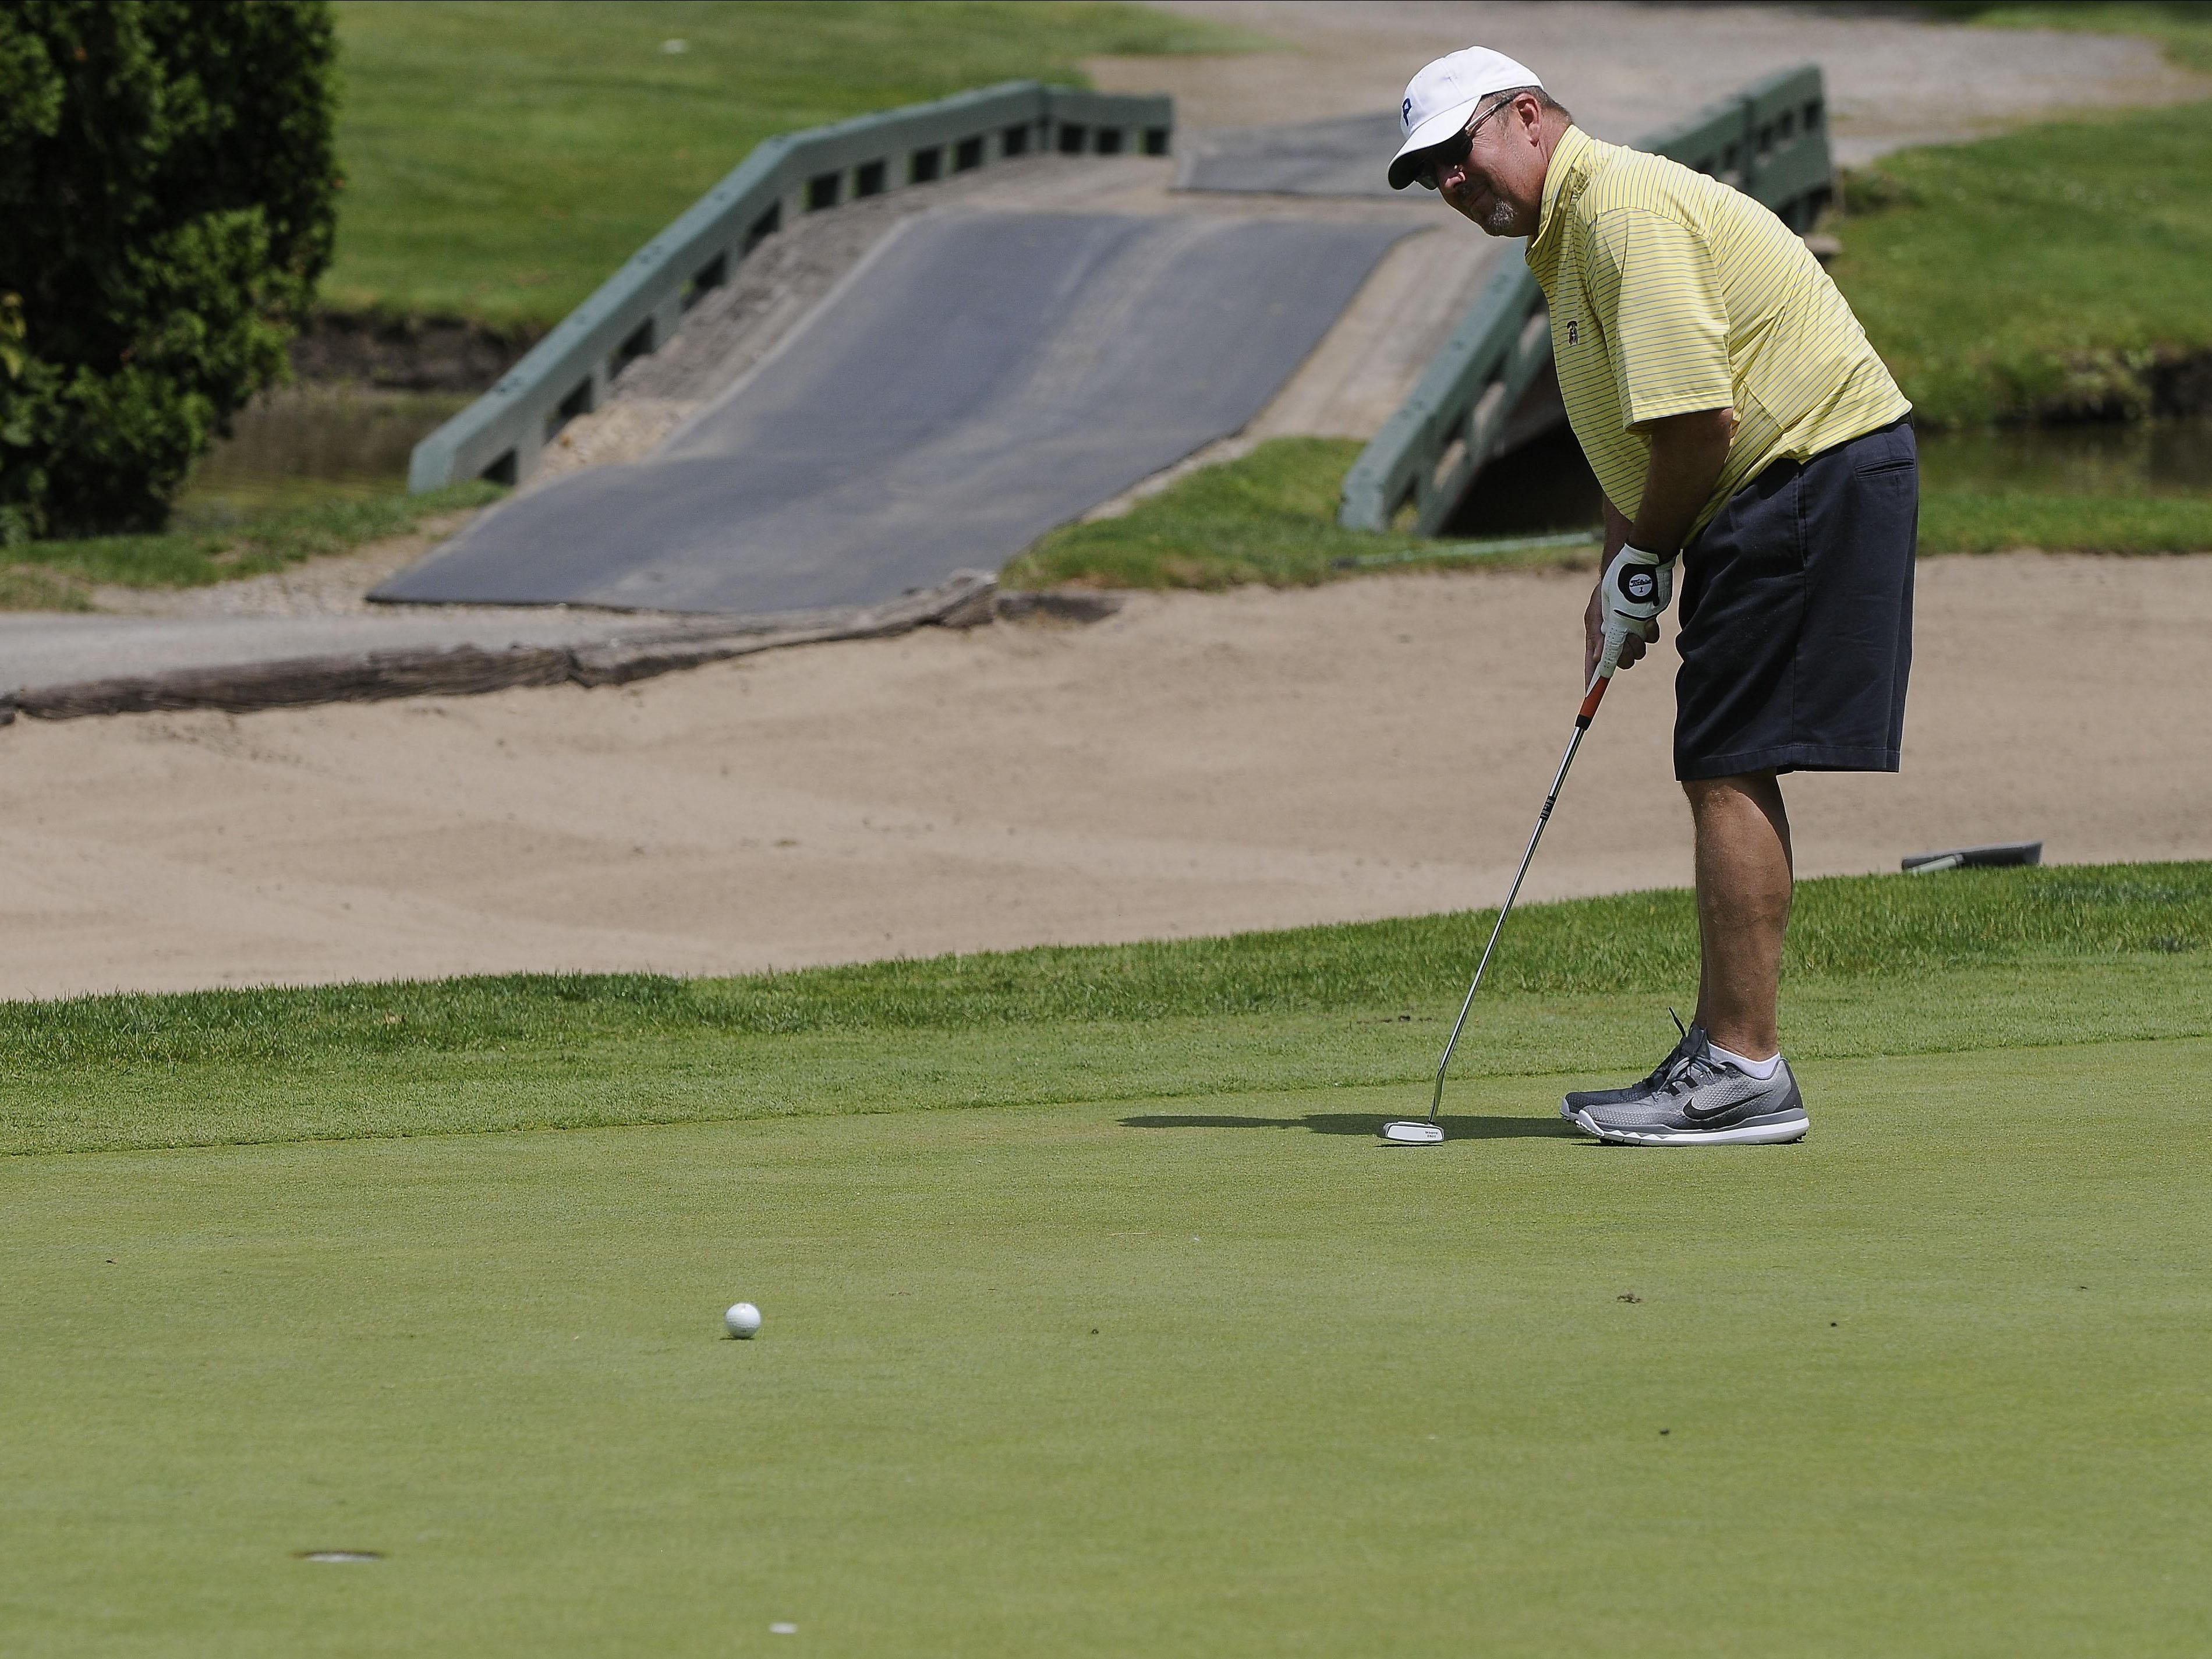 Markus Schulz putts the ball on the 18th green Friday, July 10 during the Port Huron Elks 2015 Men's Invitational in Port Huron Township.